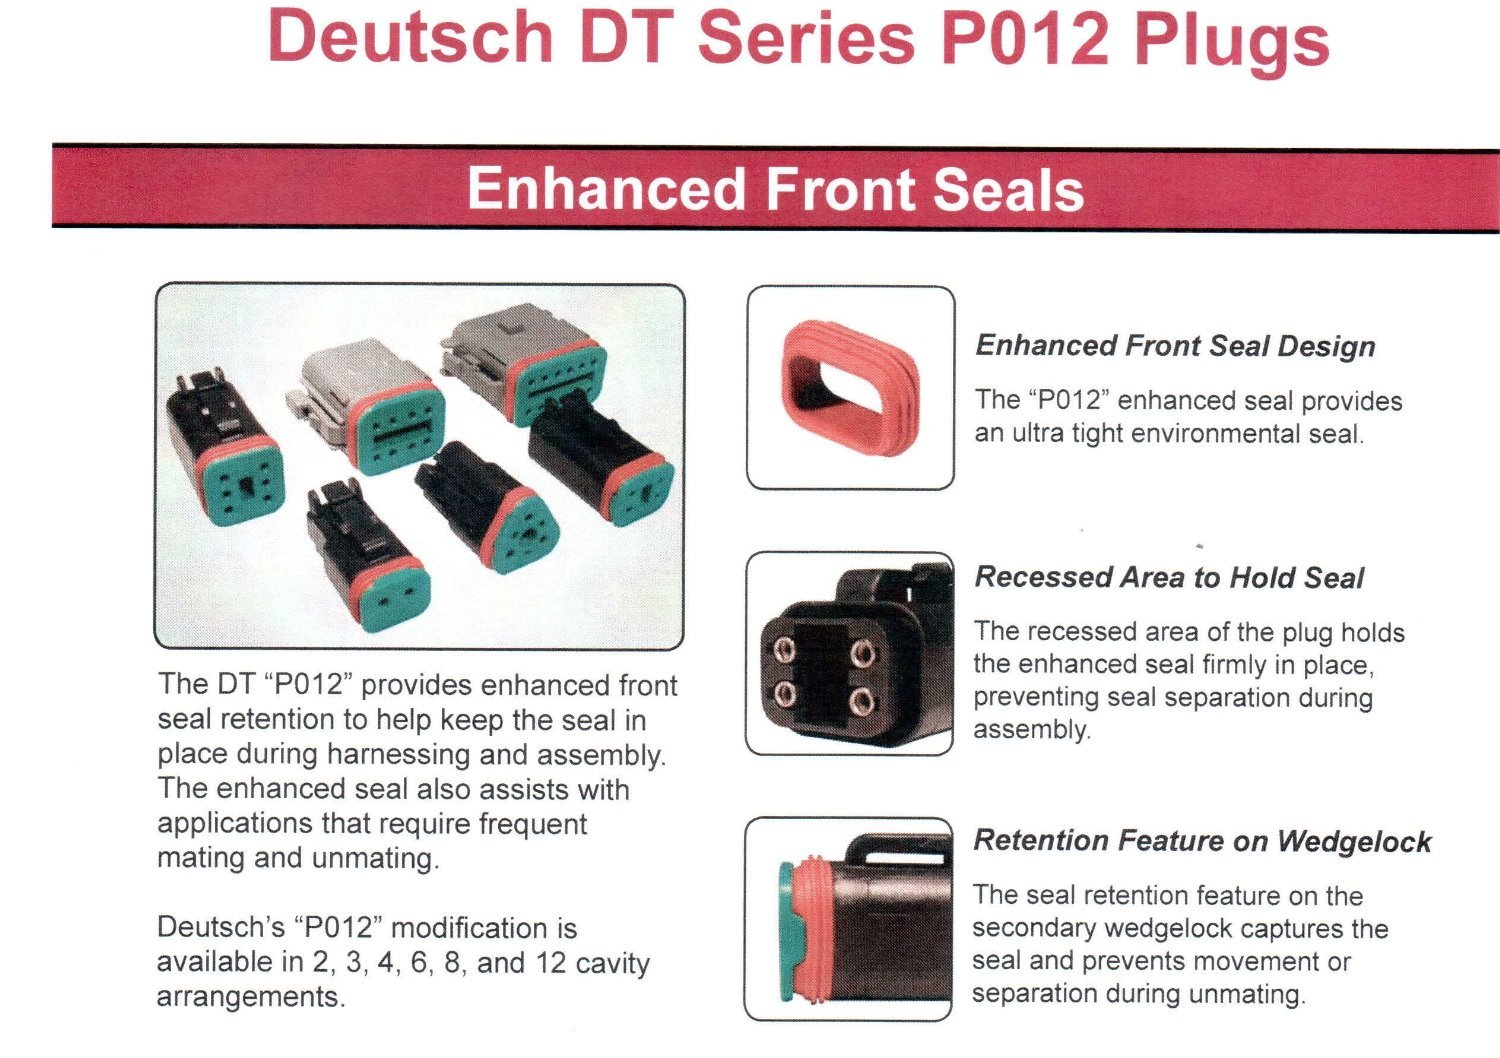 Caterpillar Kit CAT-175-3700 Deutsch Improved Seal DT-Series Field Service Kit with 4-Way Indent Crimp Tool and Extra Contacts: Environmentally Sealed Connectors for Caterpillar Electrical Repair by DELPHIKITS COMPANY (Image #5)